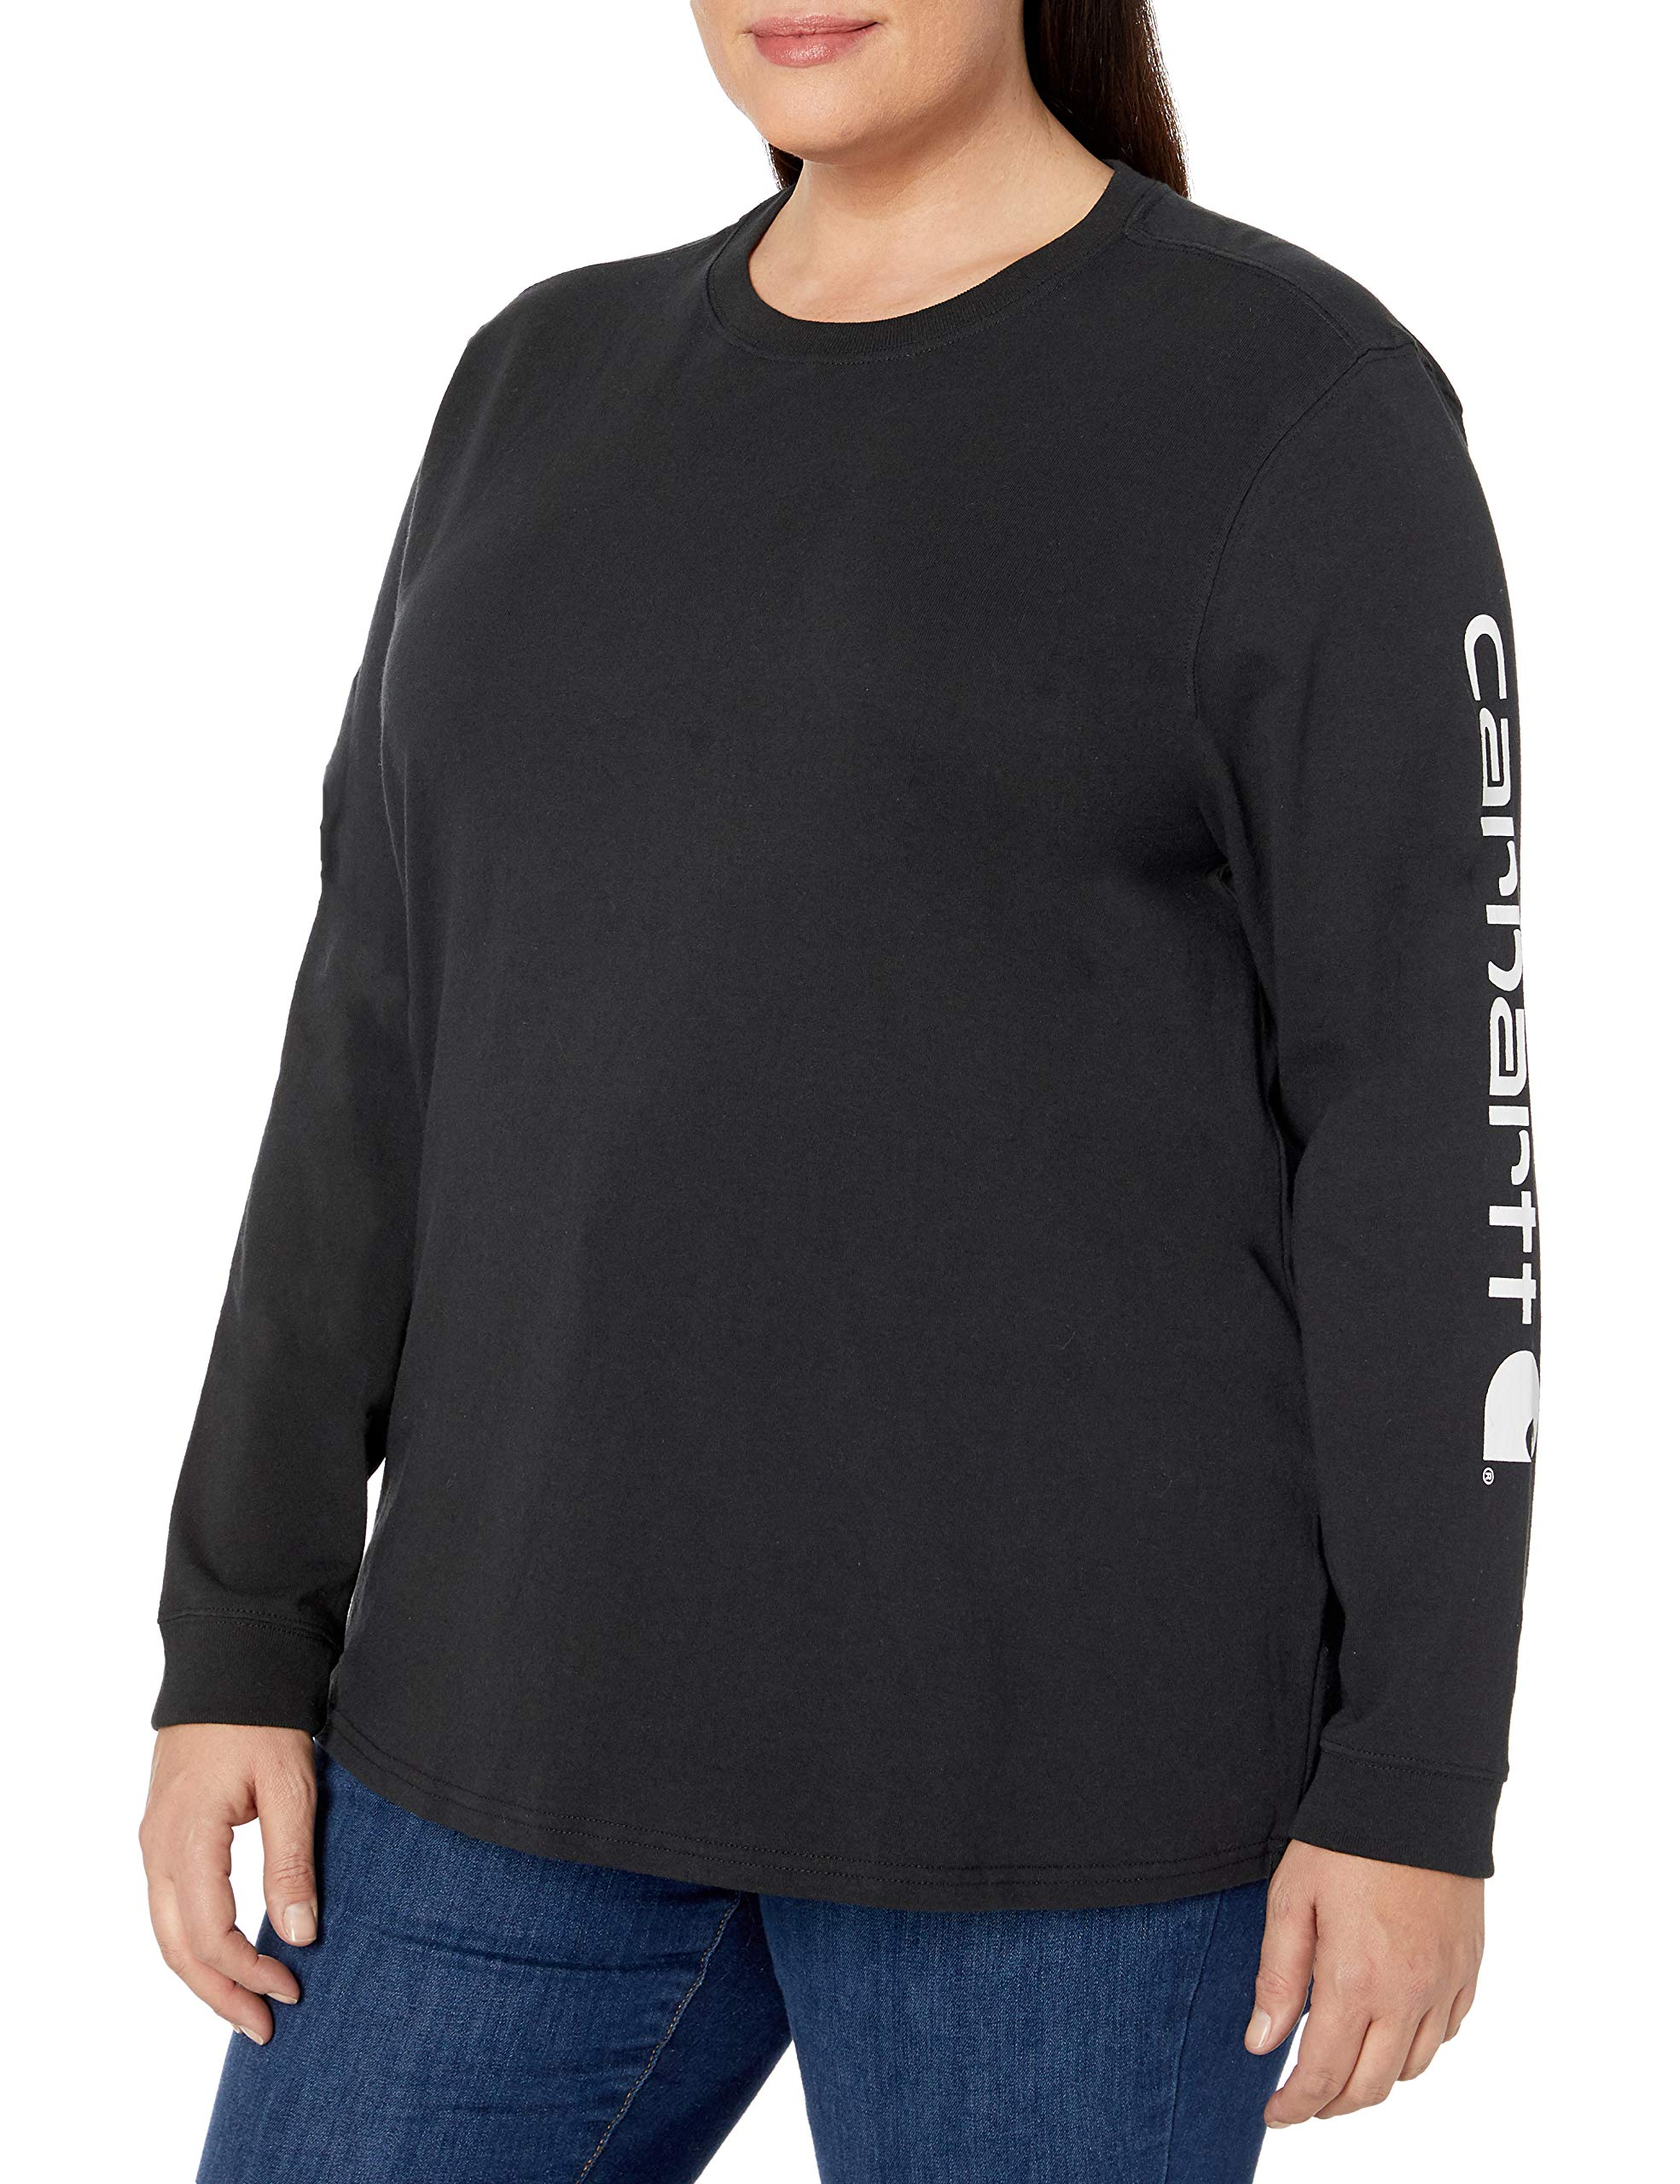 Carhartt Women's K231 Workwear Logo Long Sleeve T-Shirt (Regular and Plus Sizes)